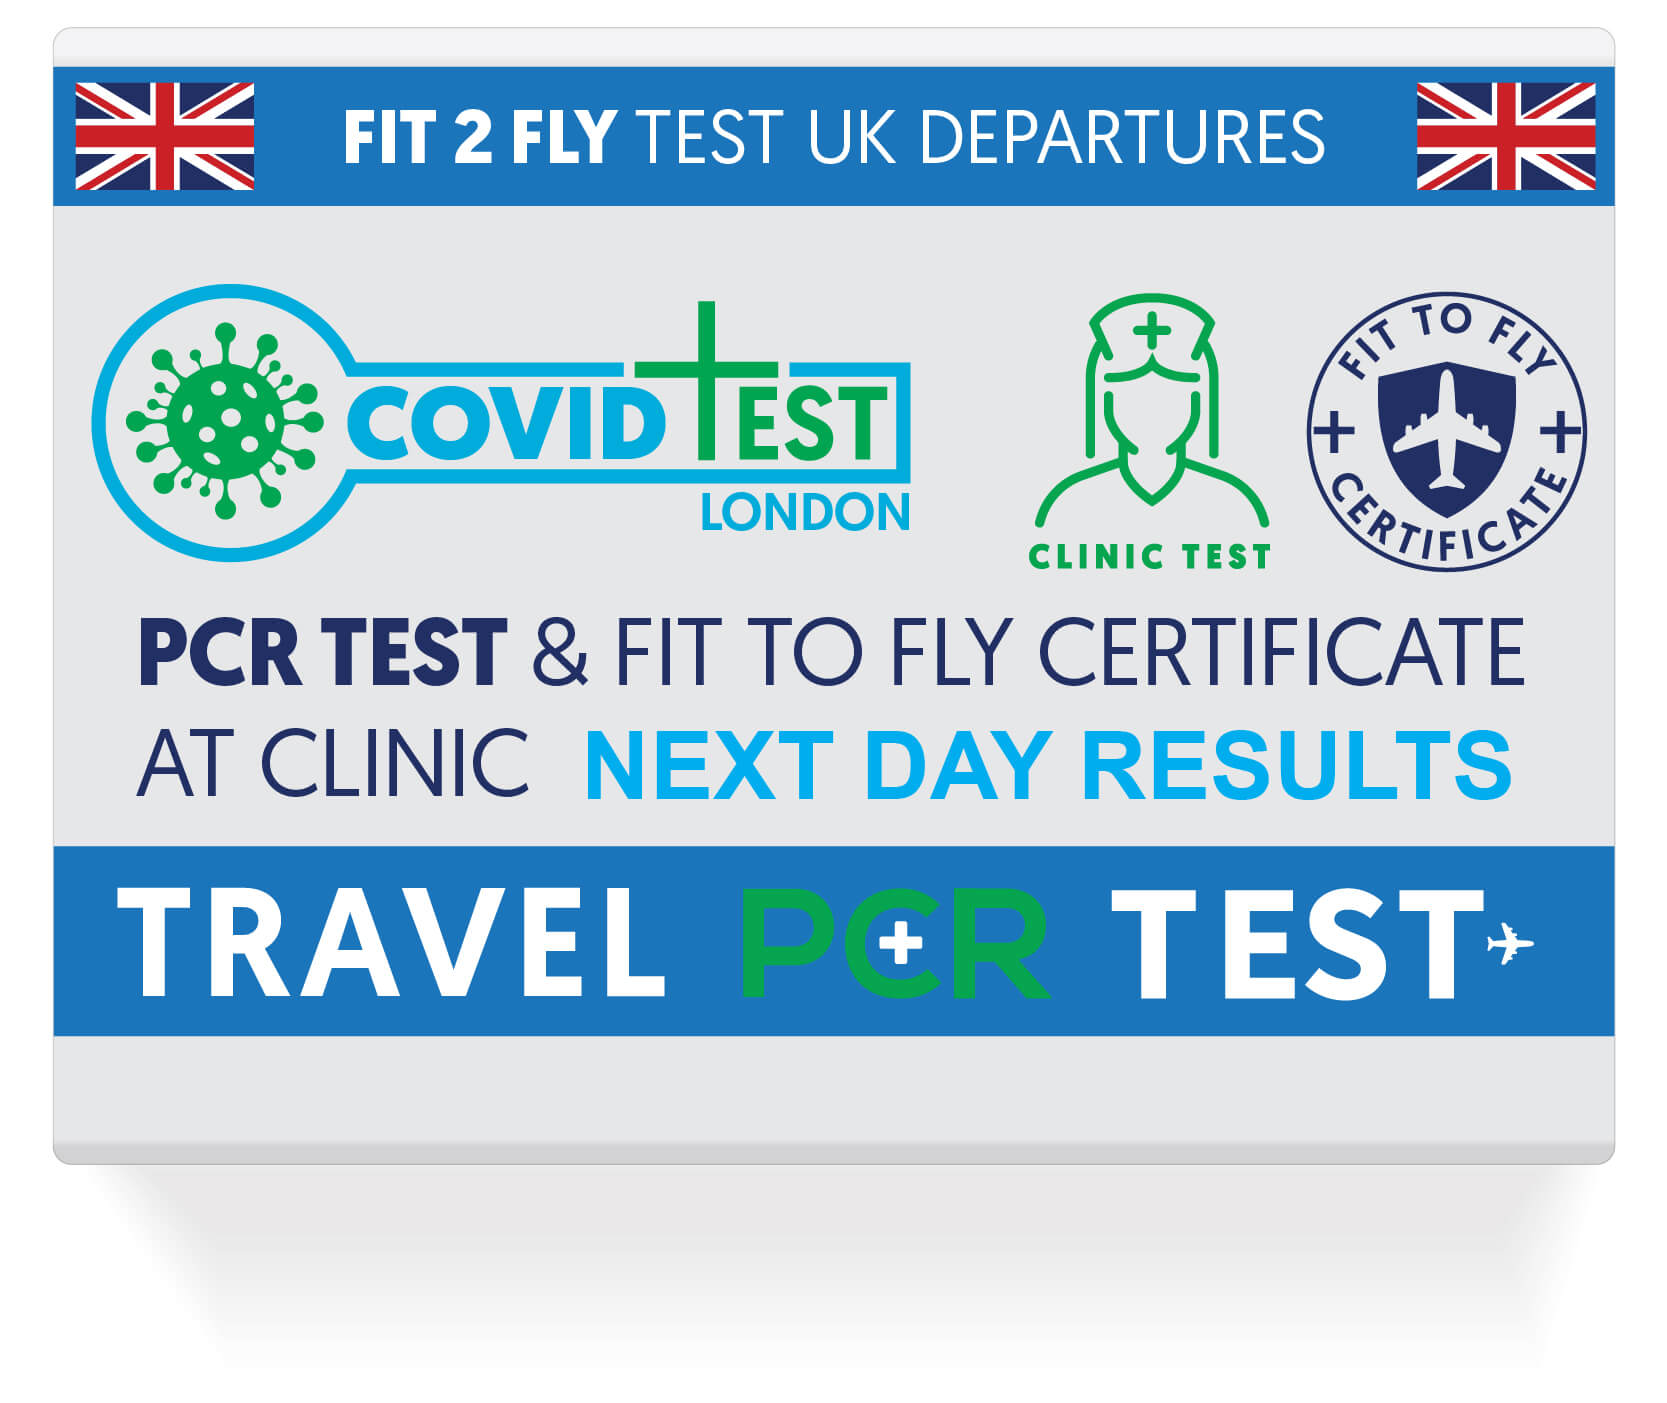 covid-test-london-_fit-to-fly-clinic